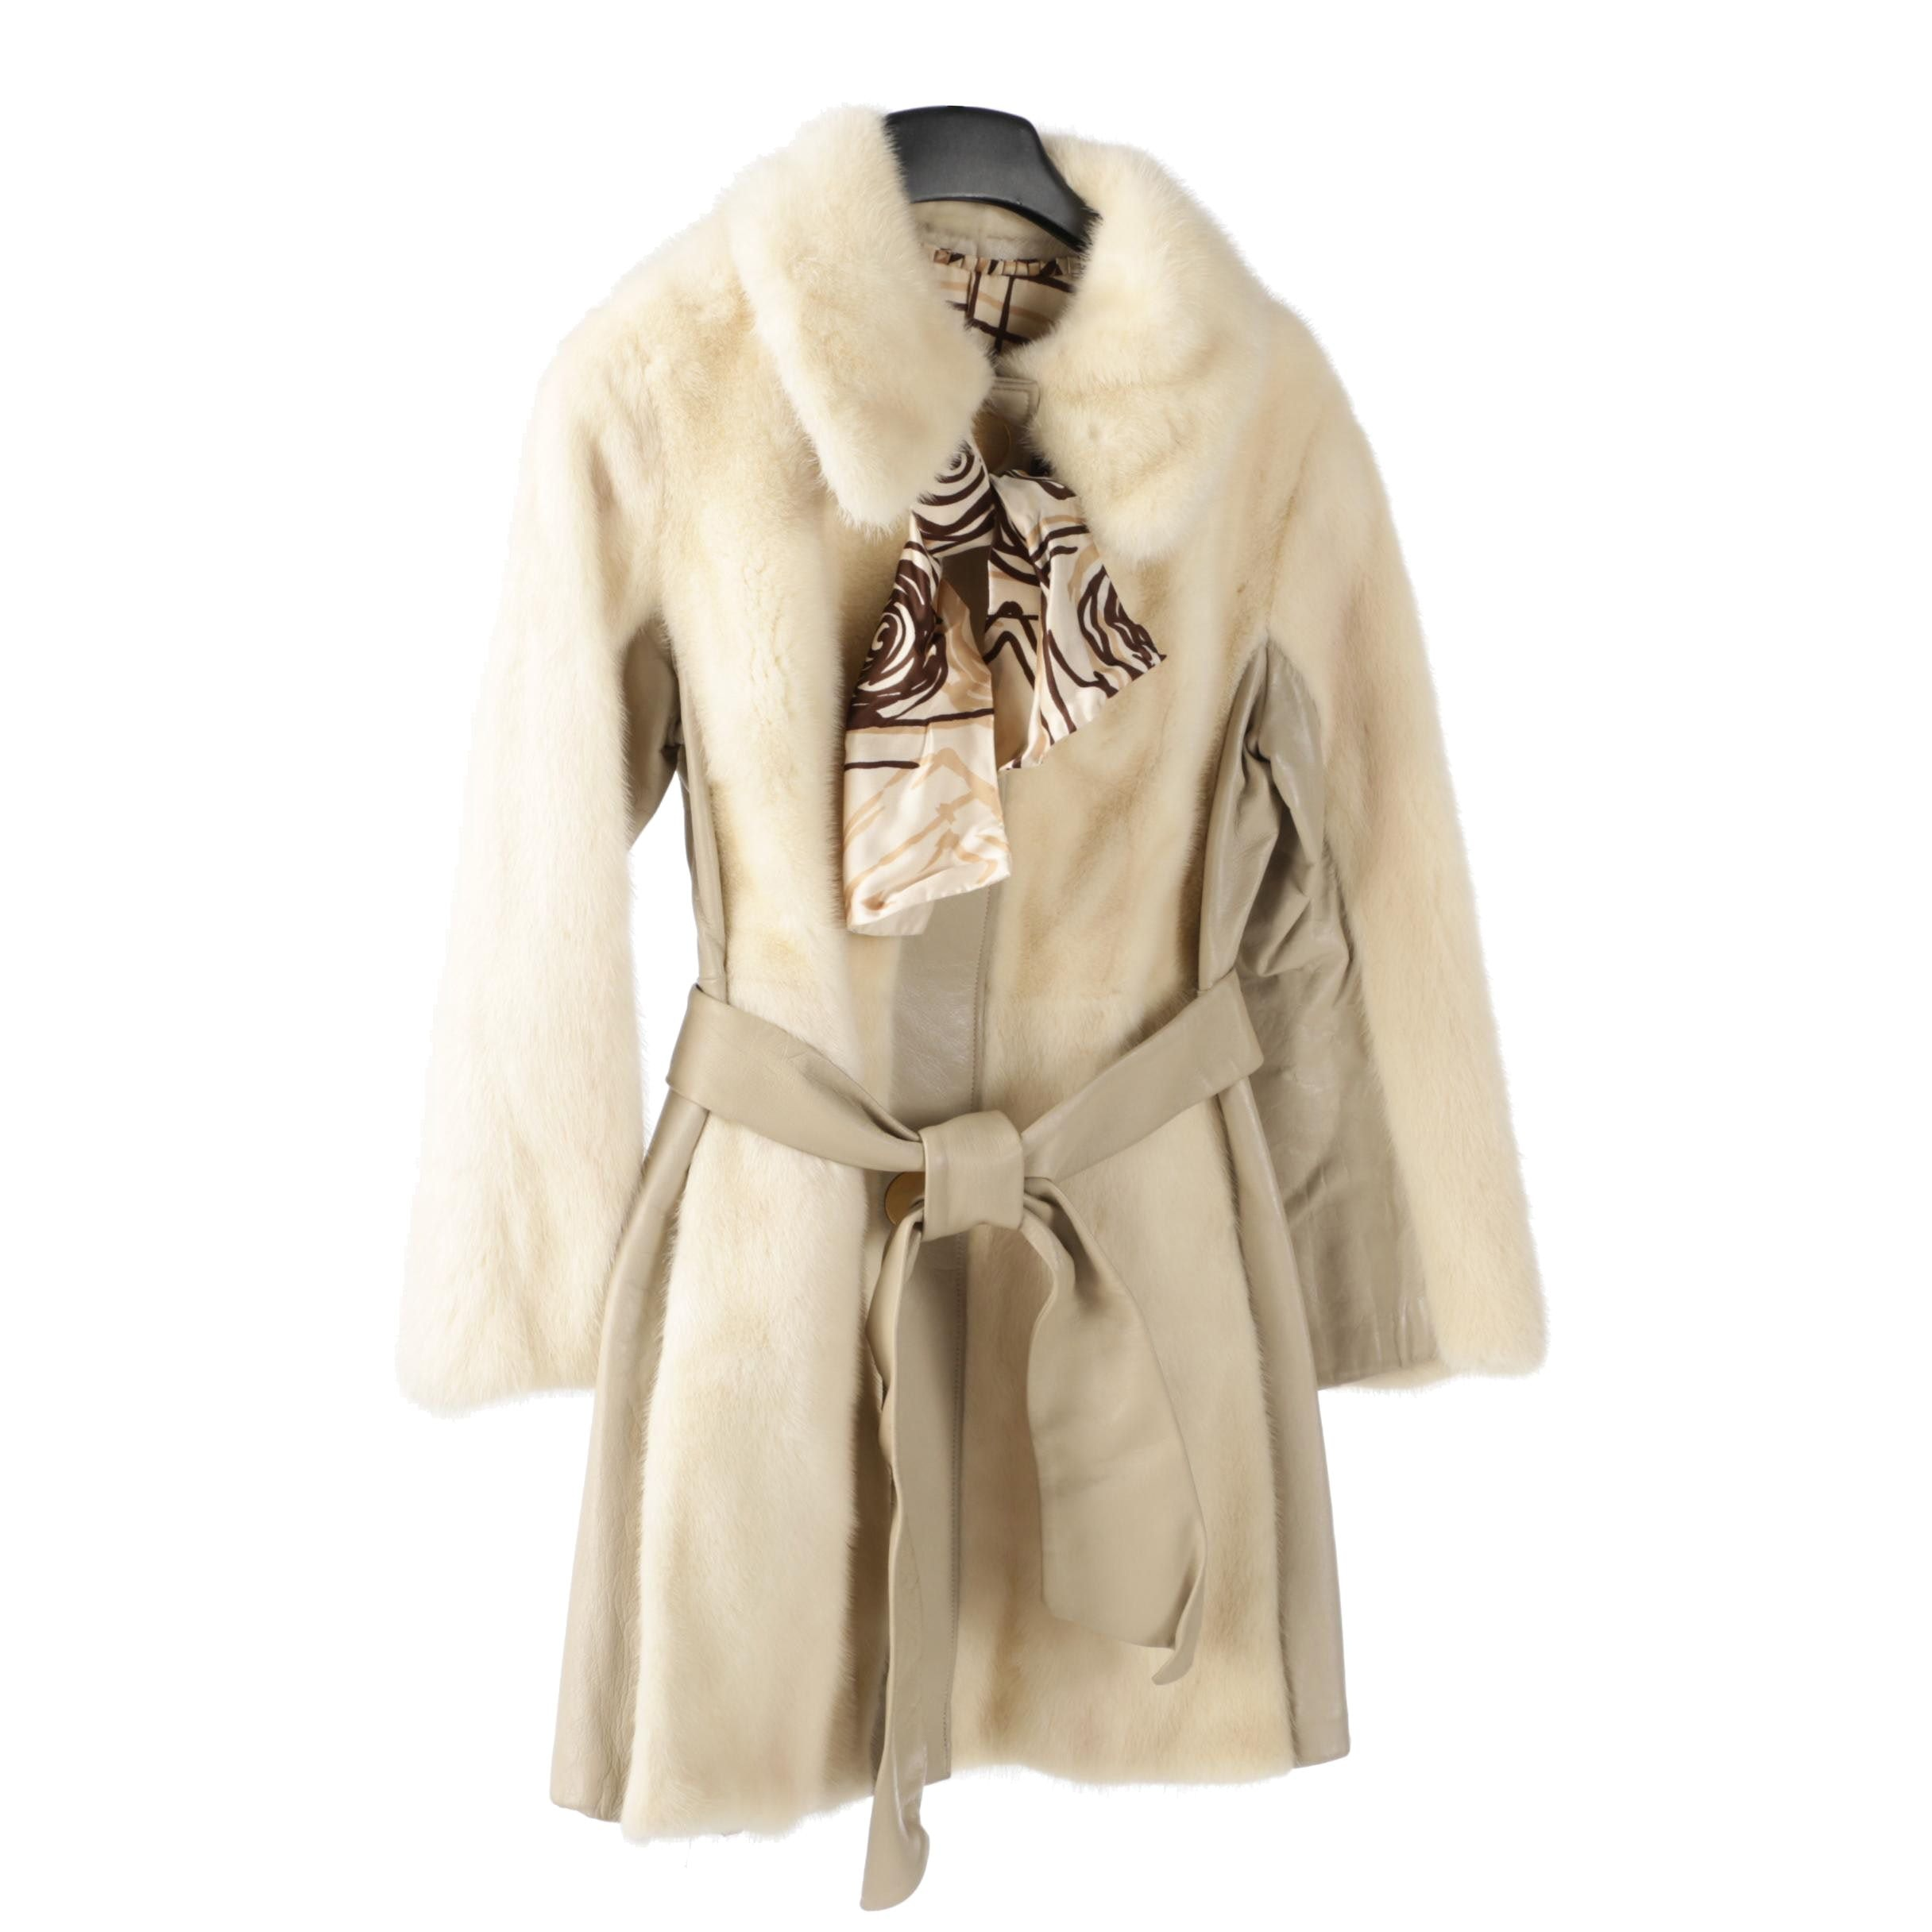 André Furs Dyed Mink Fur and Beige Leather Fitted Coat with Scarf, Vintage